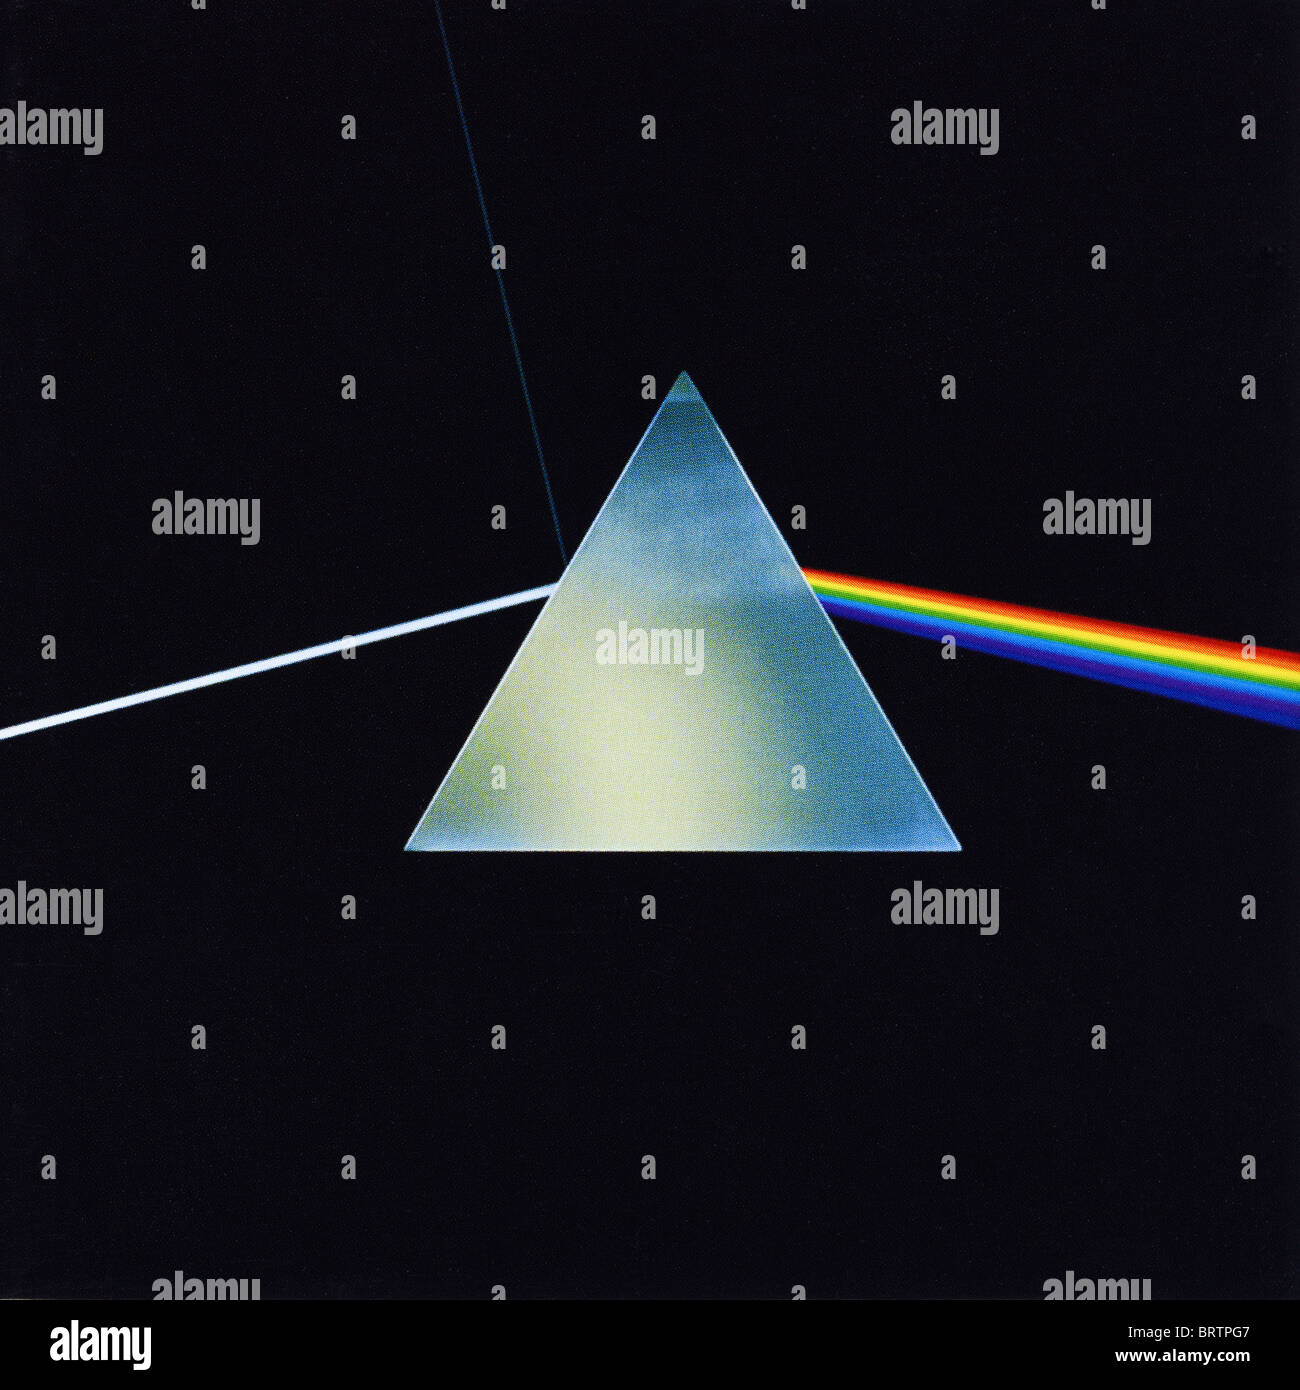 Album Cover Of Dark Side Of The Moon By Pink Floyd Released By Stock Photo Alamy